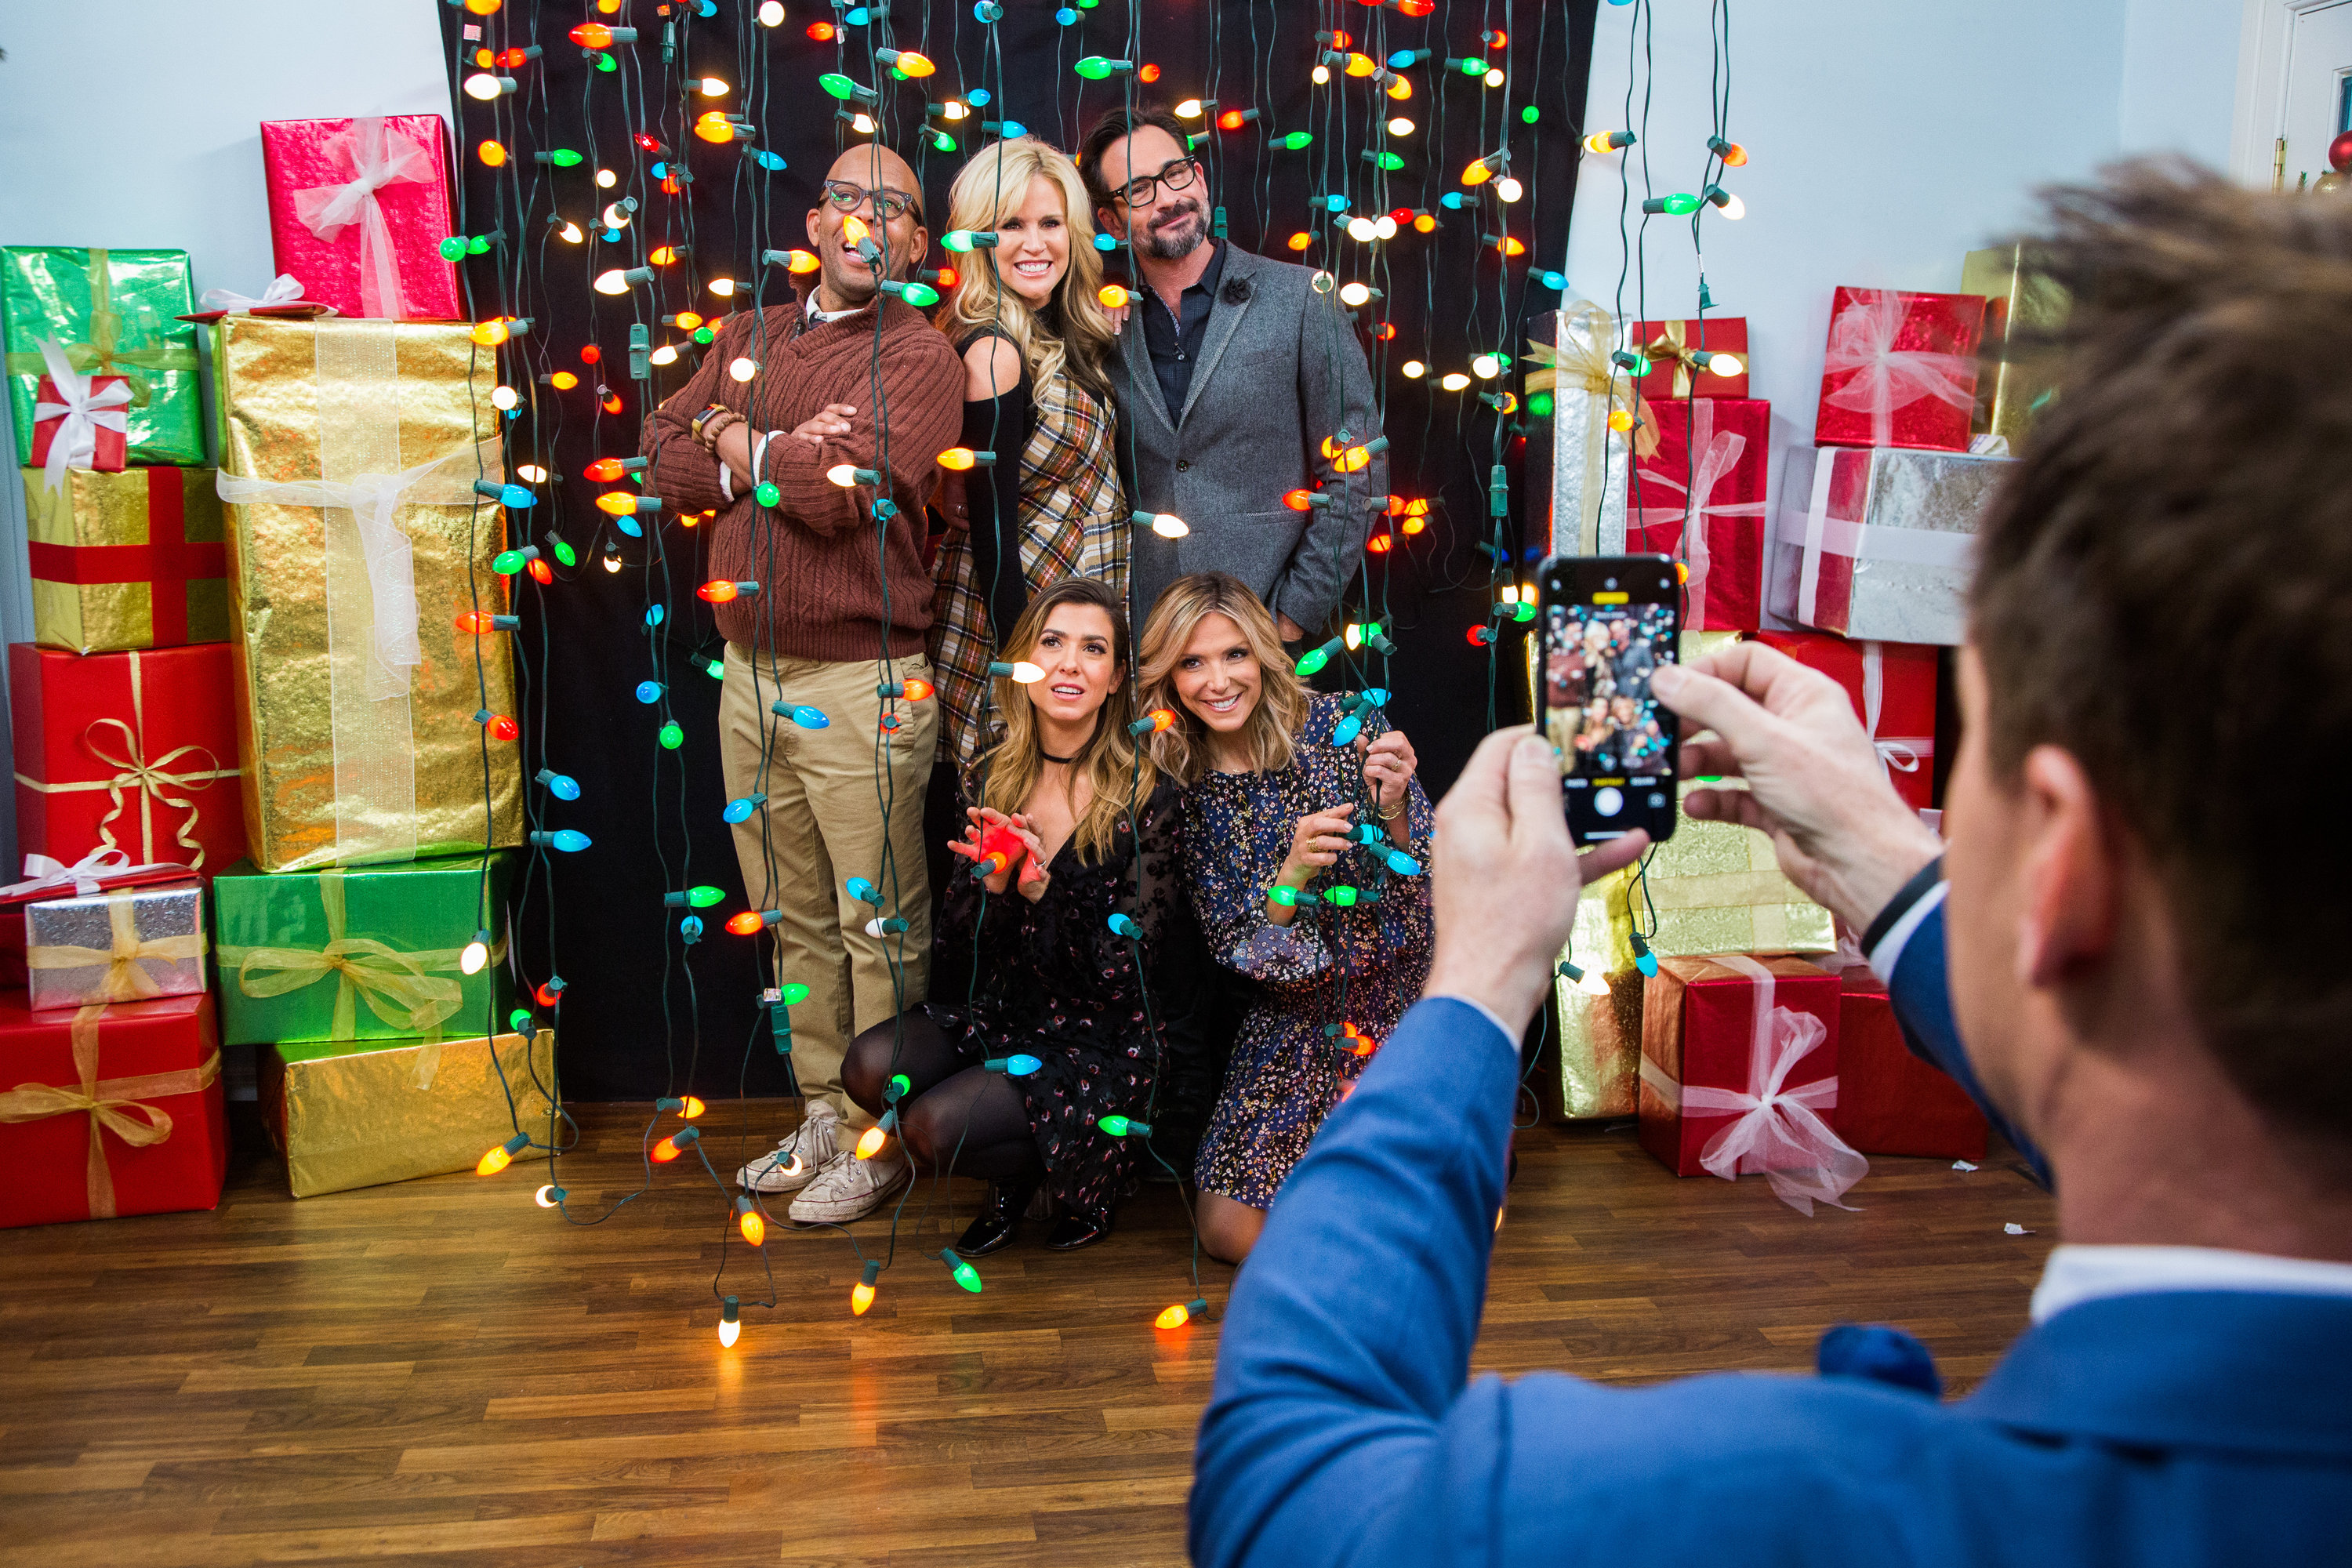 How To DIY Christmas Light Photo Op Hallmark Channel